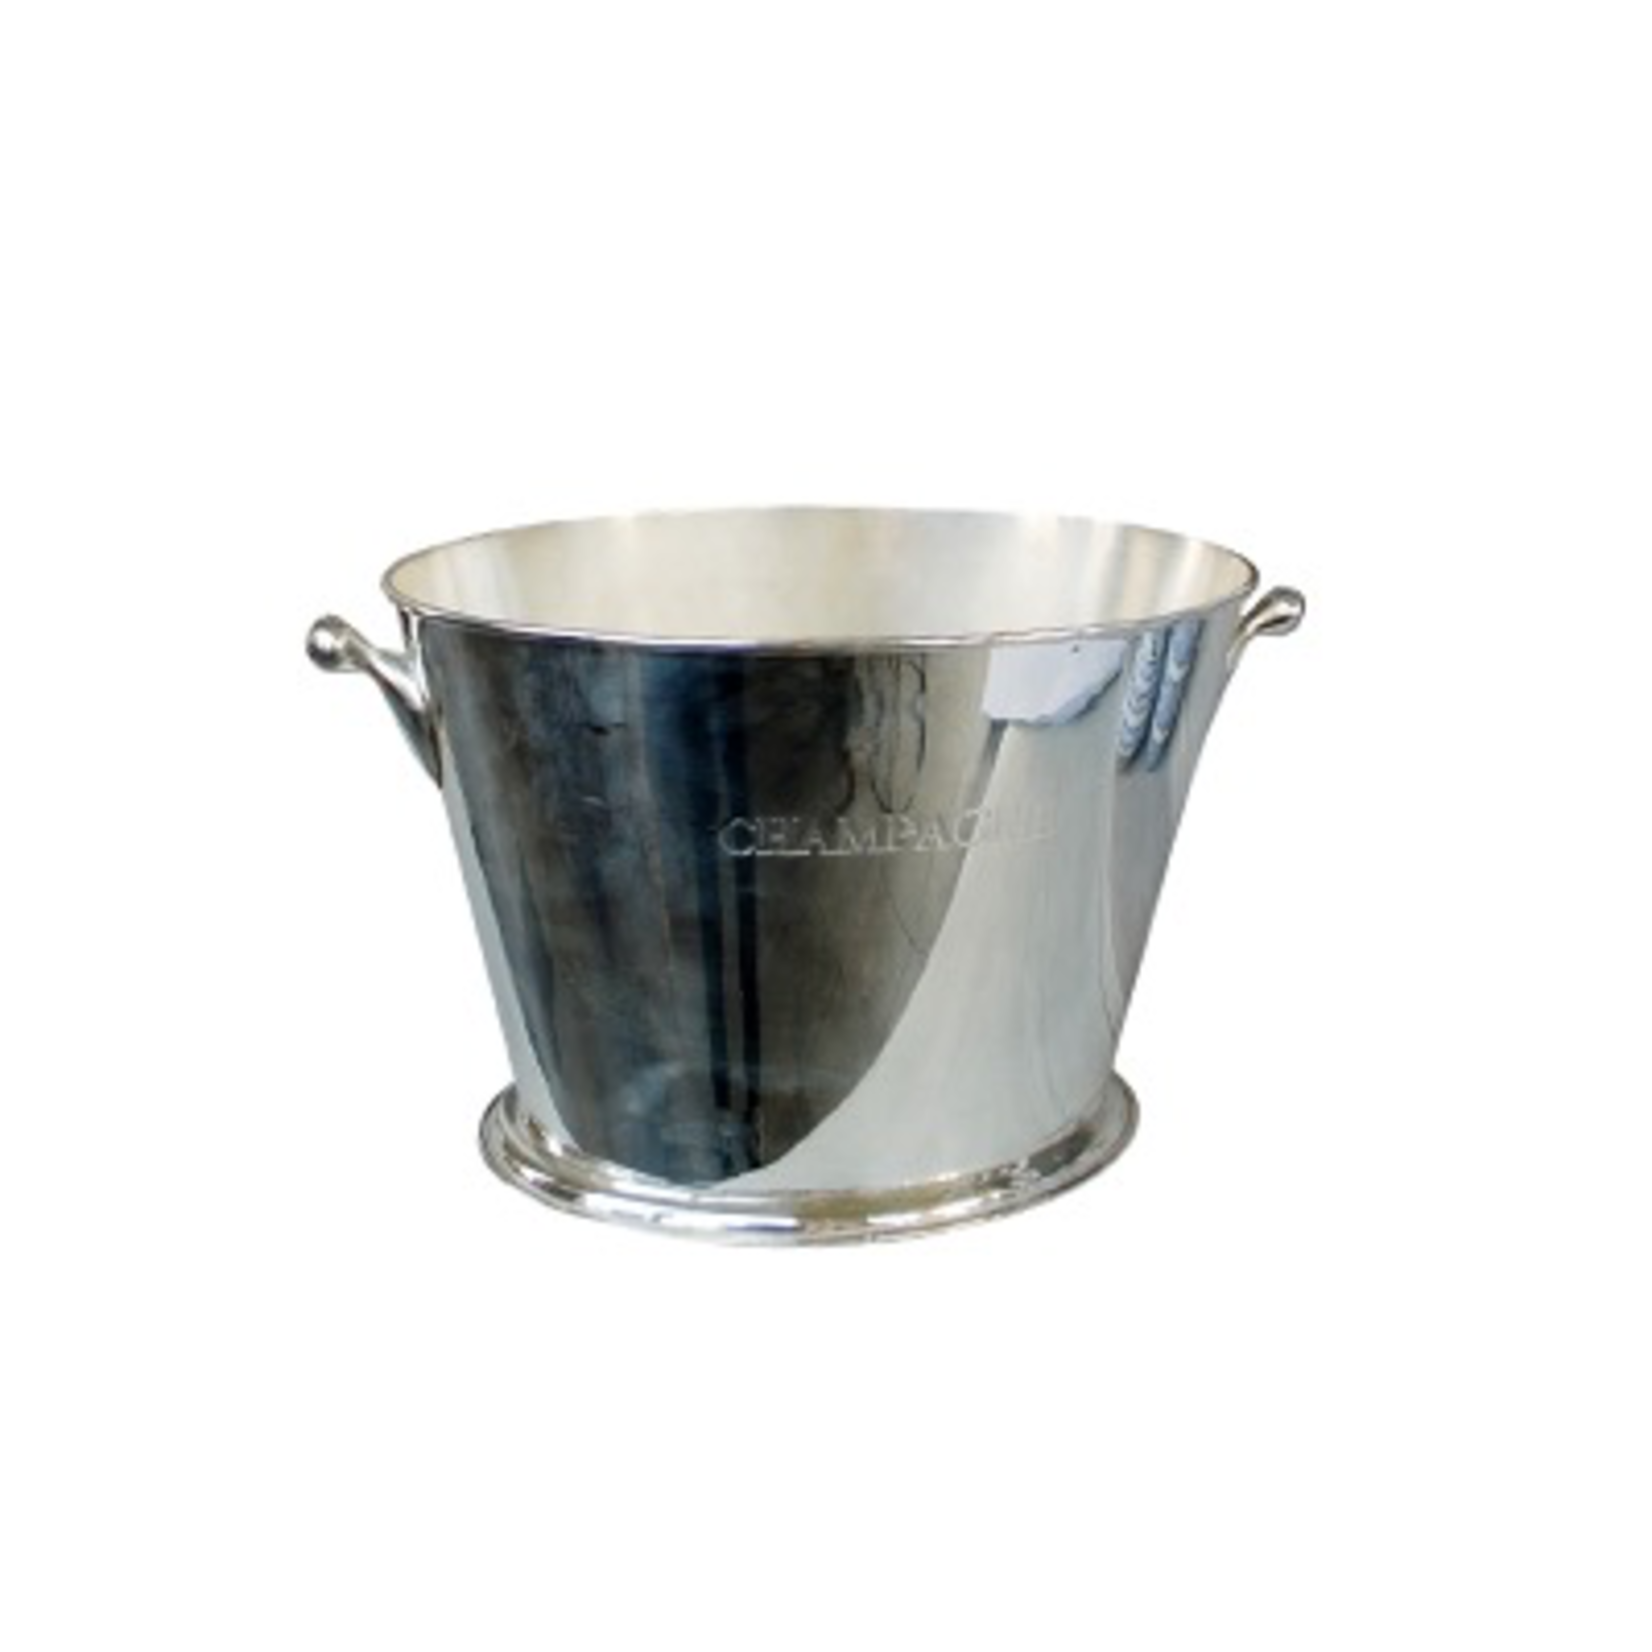 CHEHOMA CHAMPAGNE COOLER SILVER